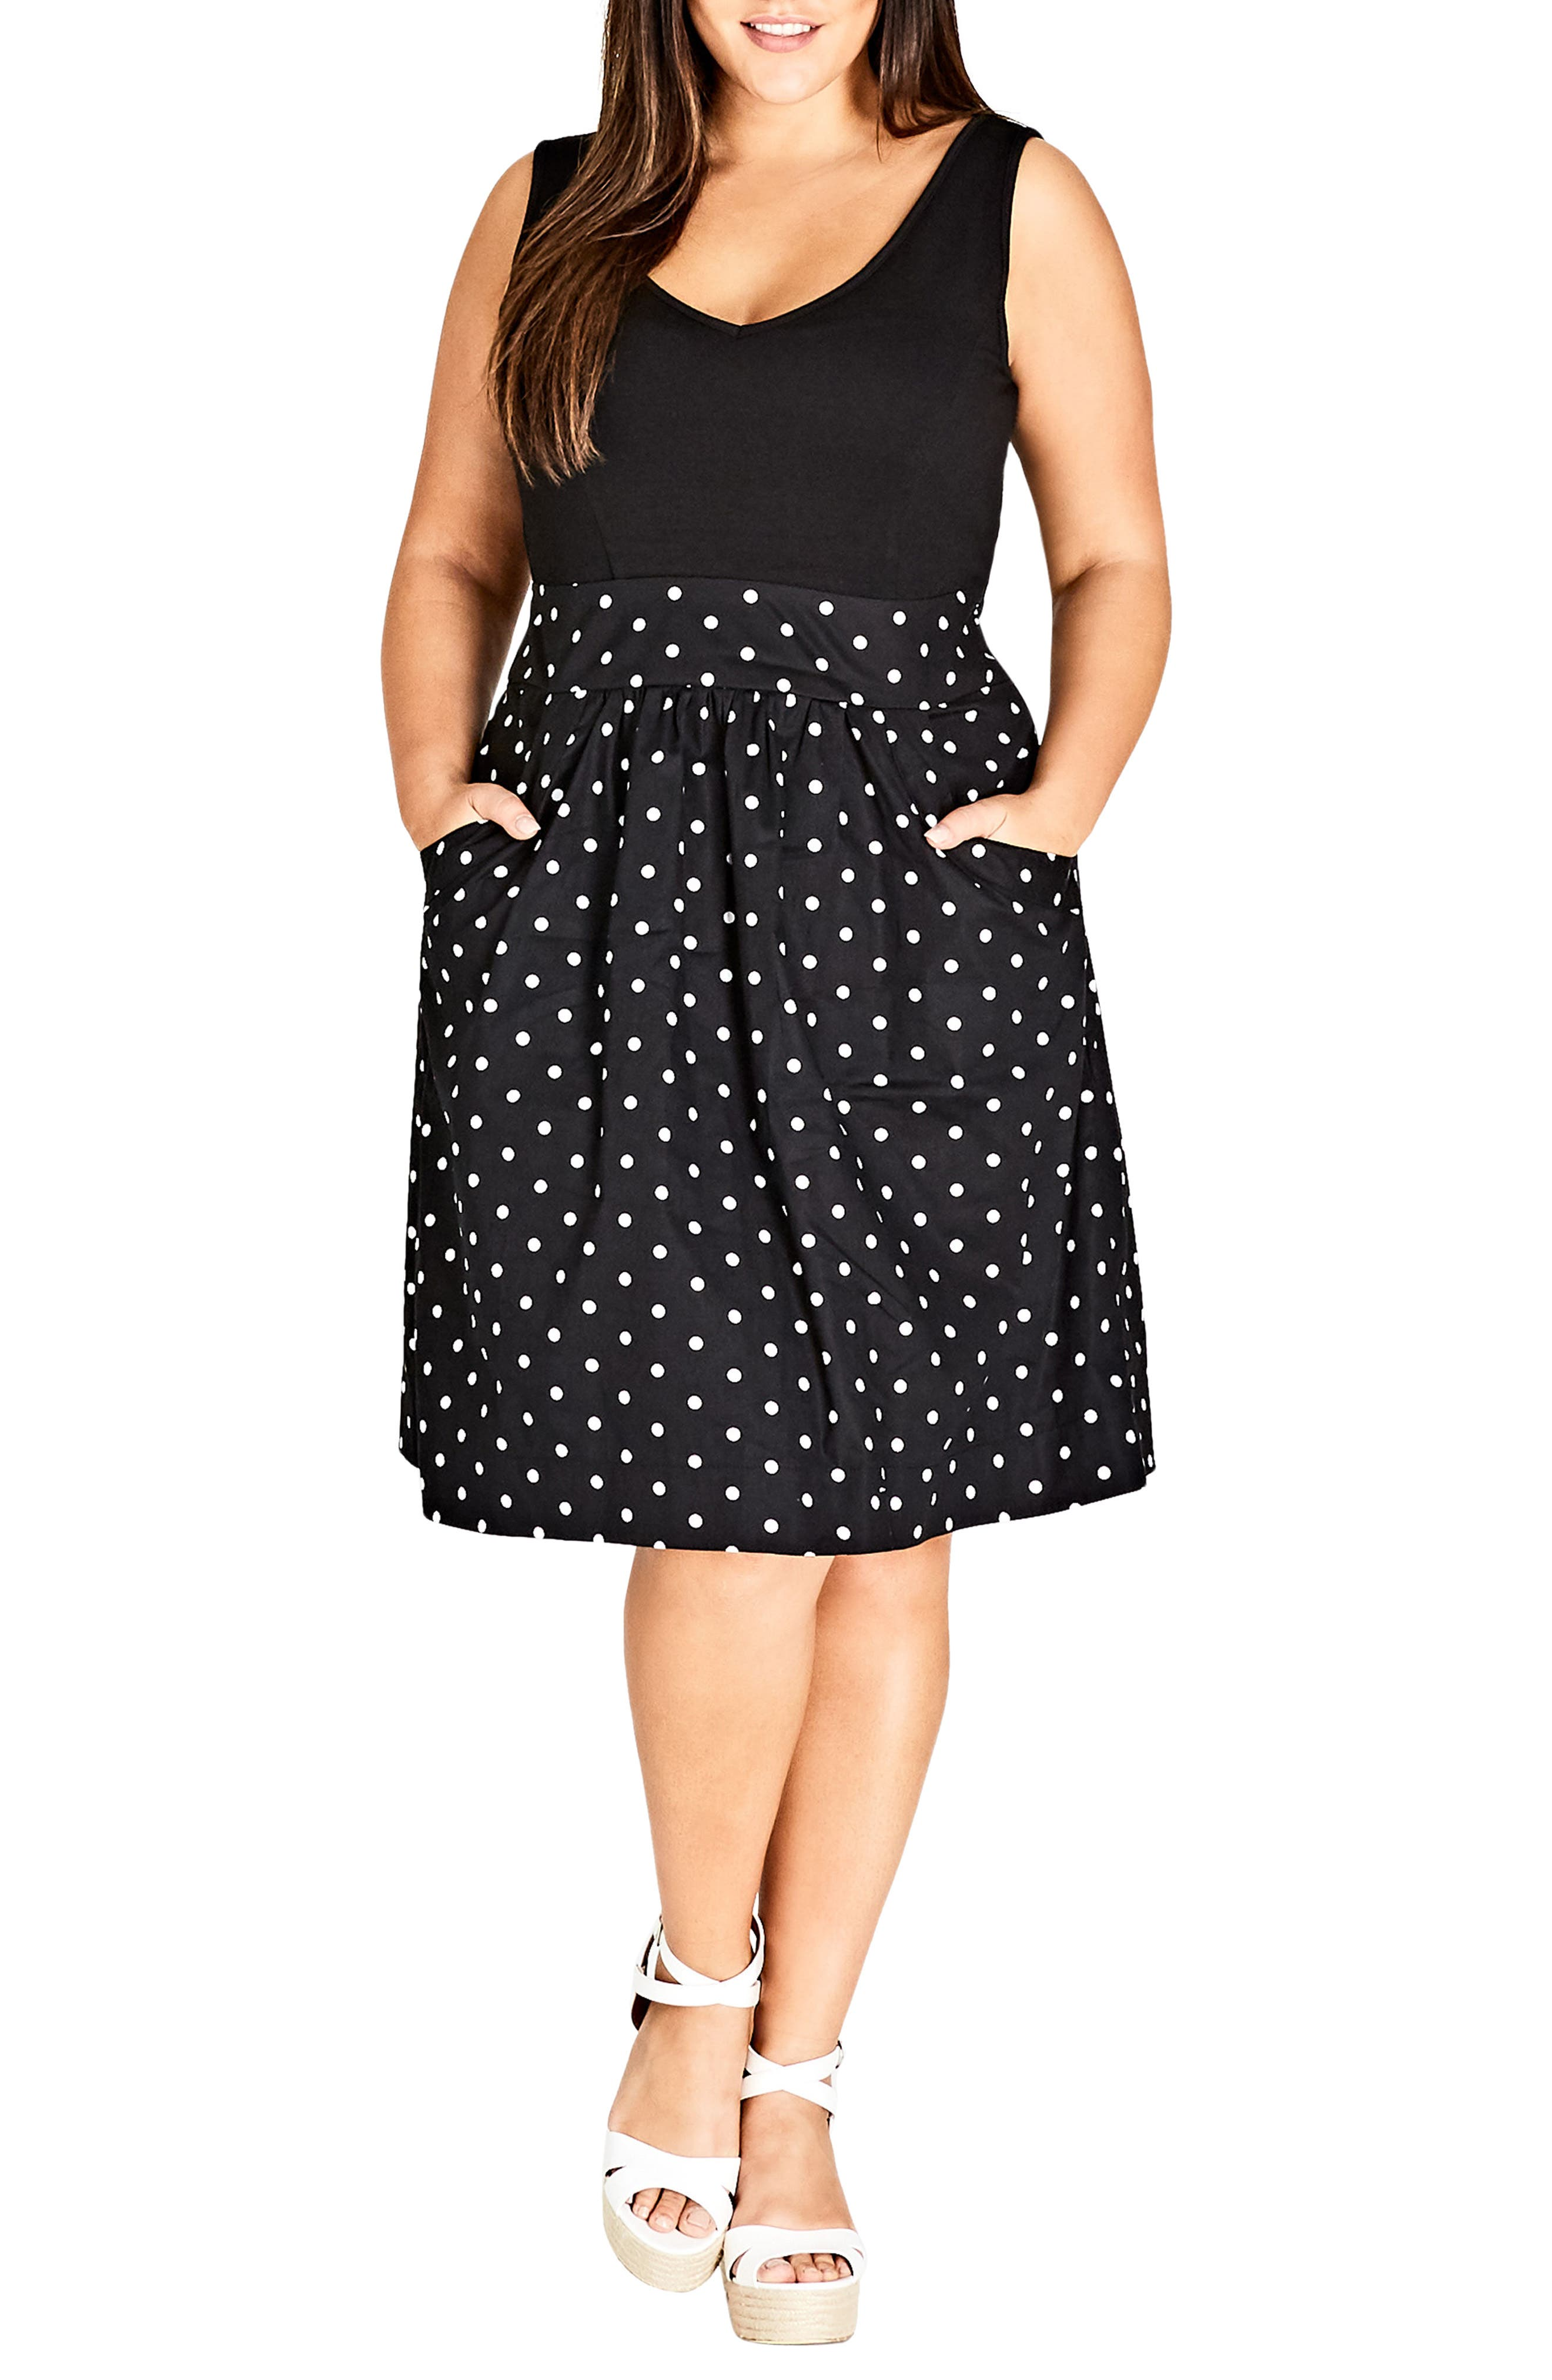 Simply Sweet Fit & Flare Dress,                             Main thumbnail 1, color,                             Sweet Spot